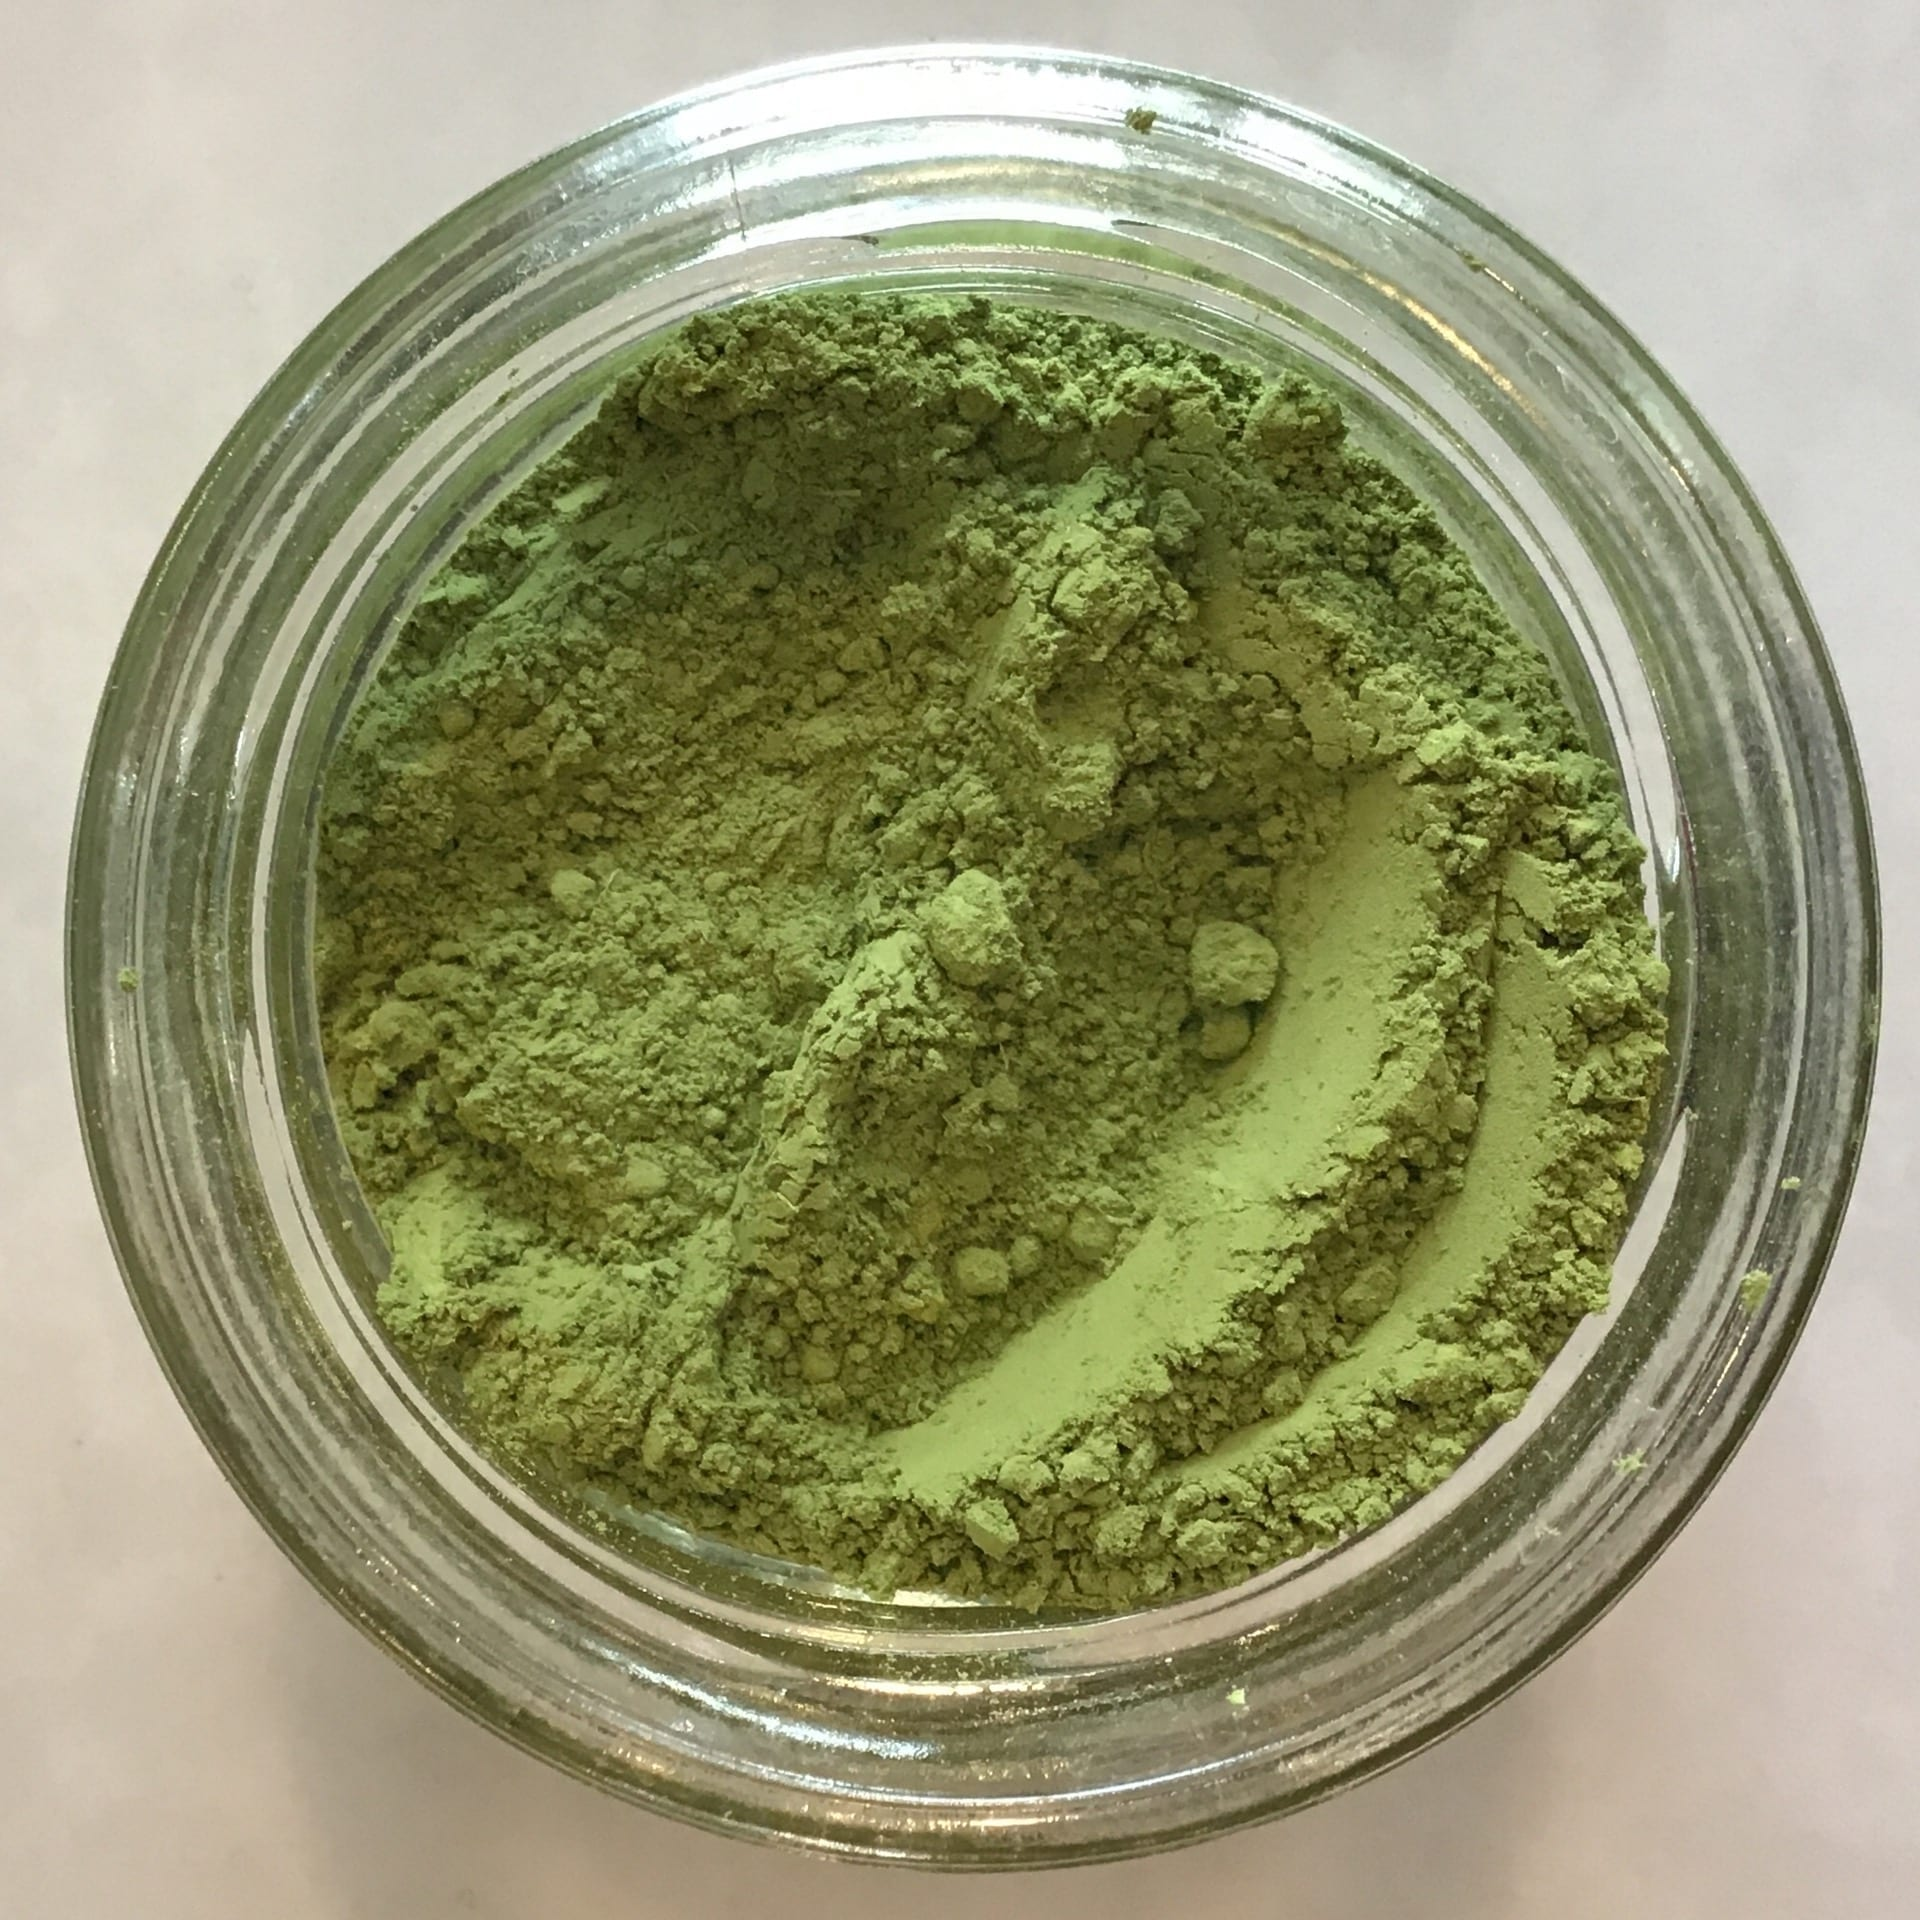 100 percent organic matcha green tea powder made without any added sweeteners sugar free